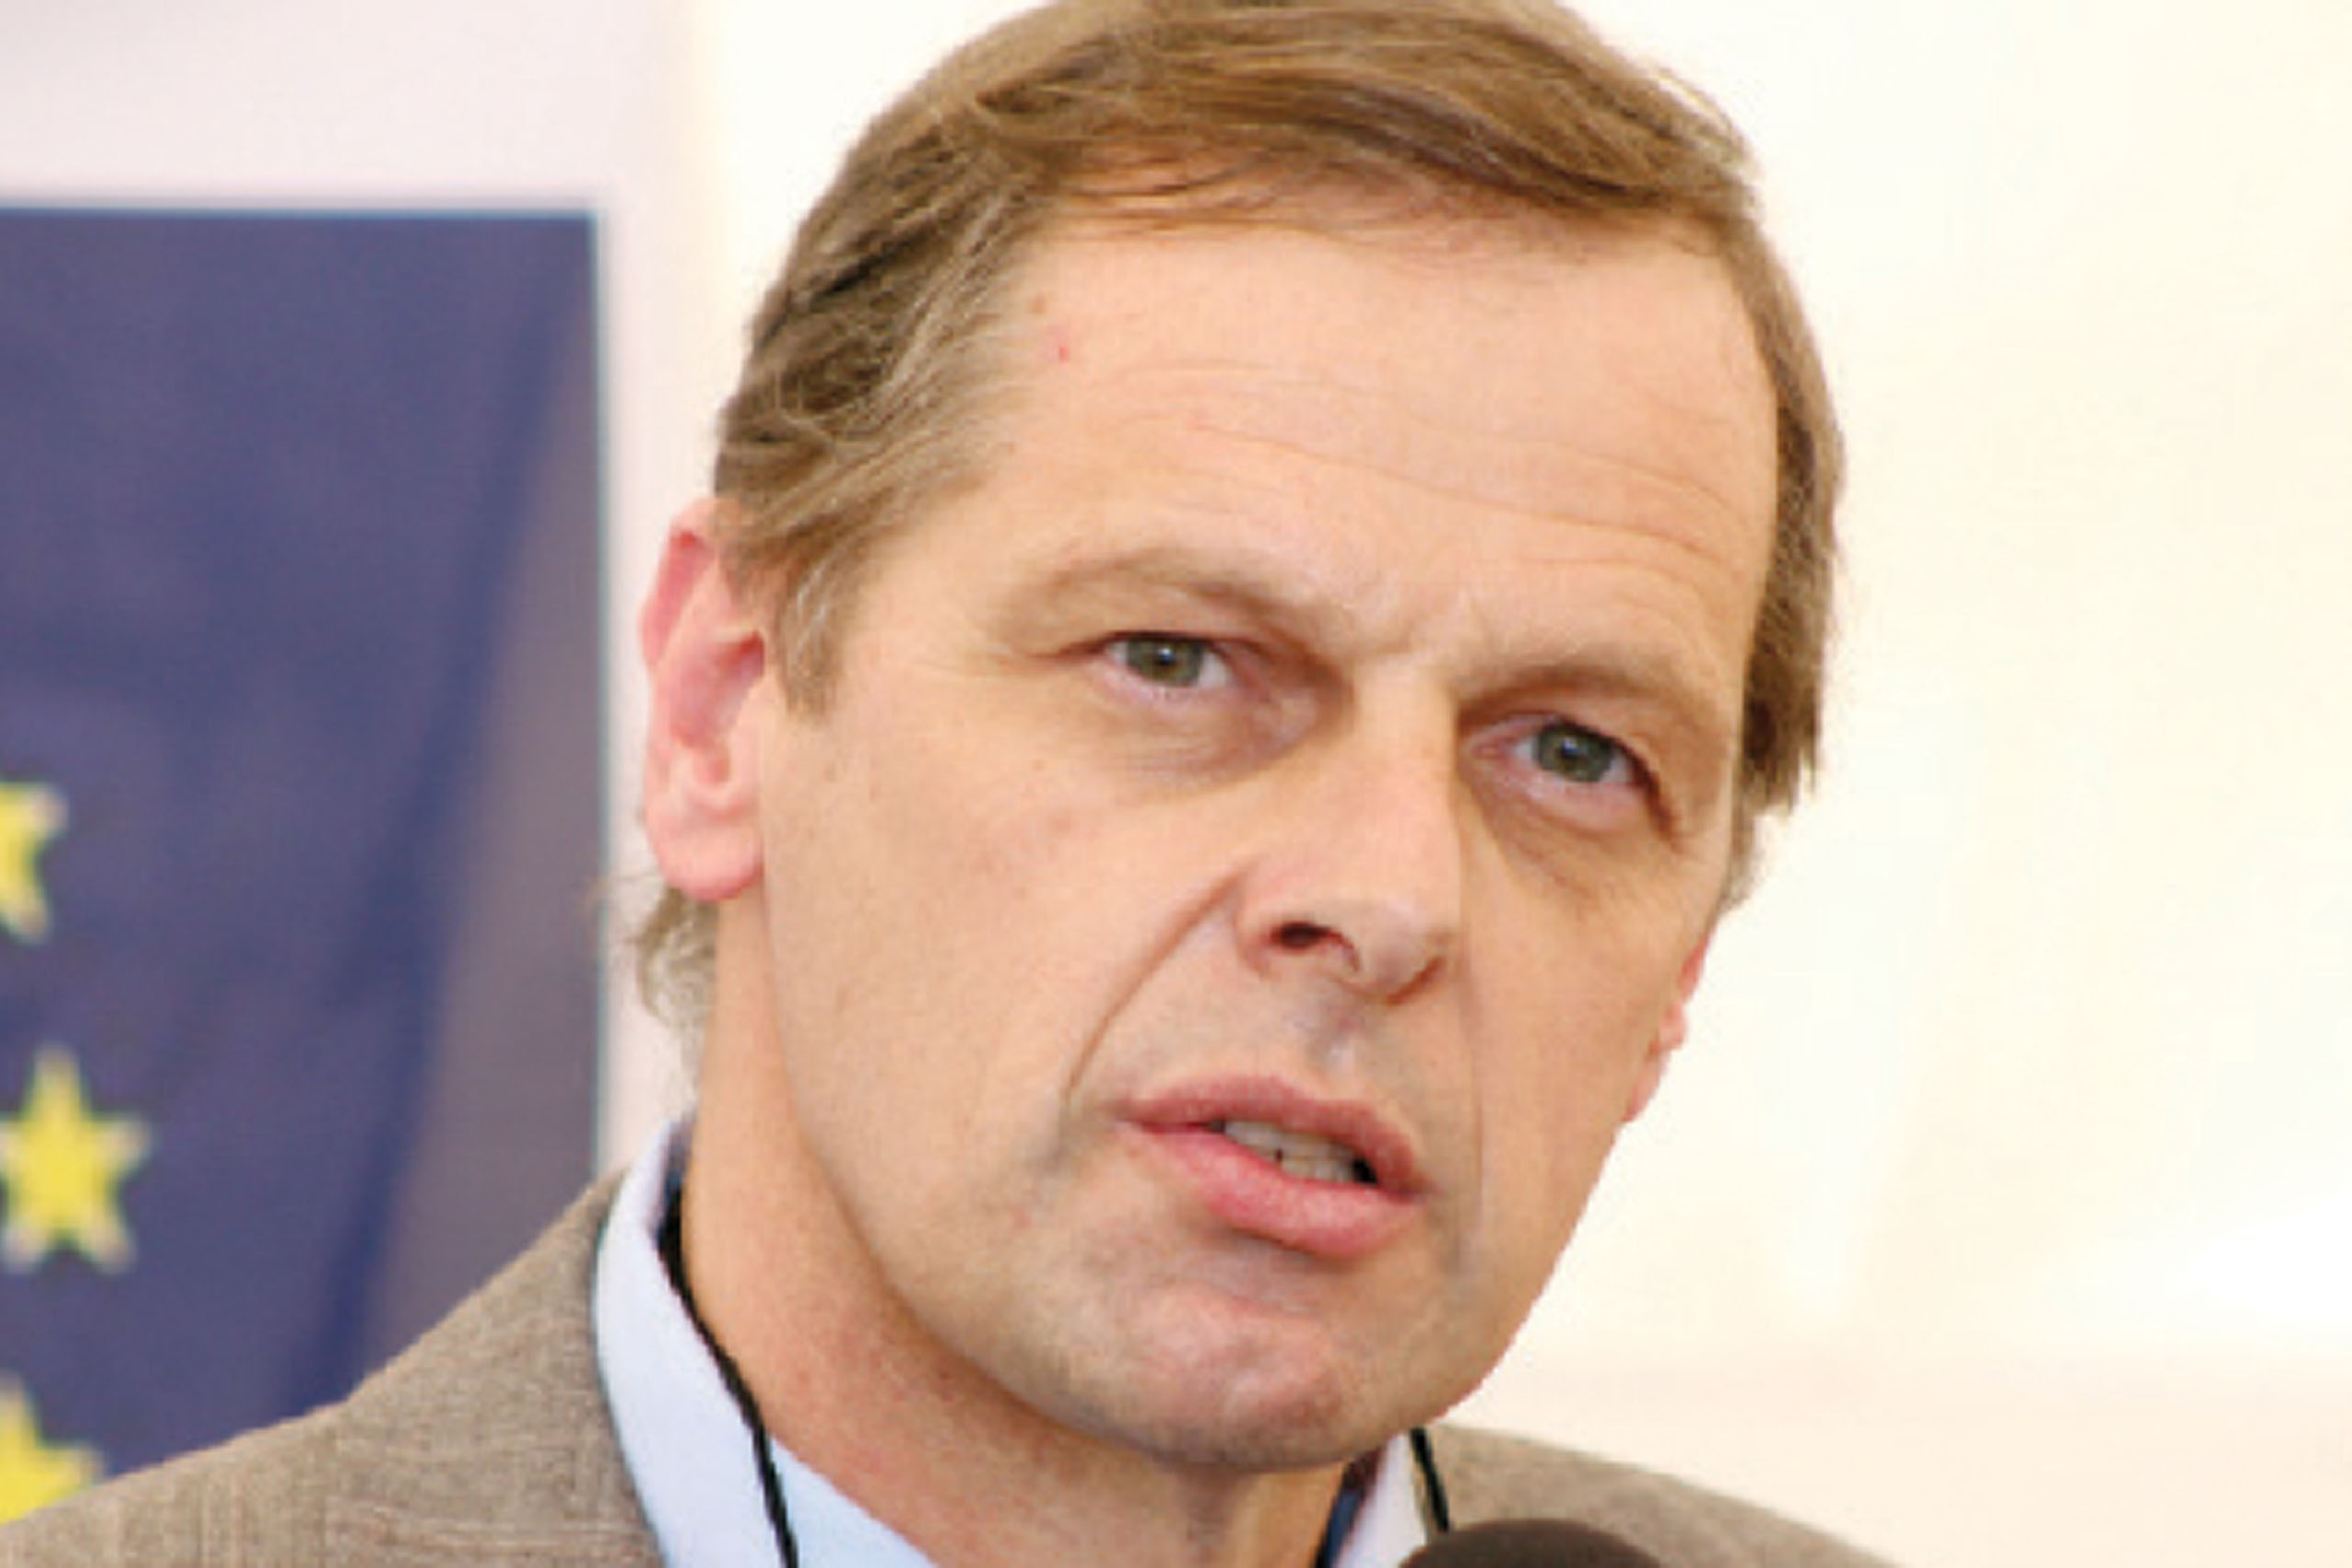 On the Hot Seat programme Journalist Violet Gonda spoke to European Union ambassador to Zimbabwe Philippe Van Damme on the bloc's re-engagement strategy on Zimbabwe, land compensation and elections. What will be the EU position on Zimbabwe post Brexit?